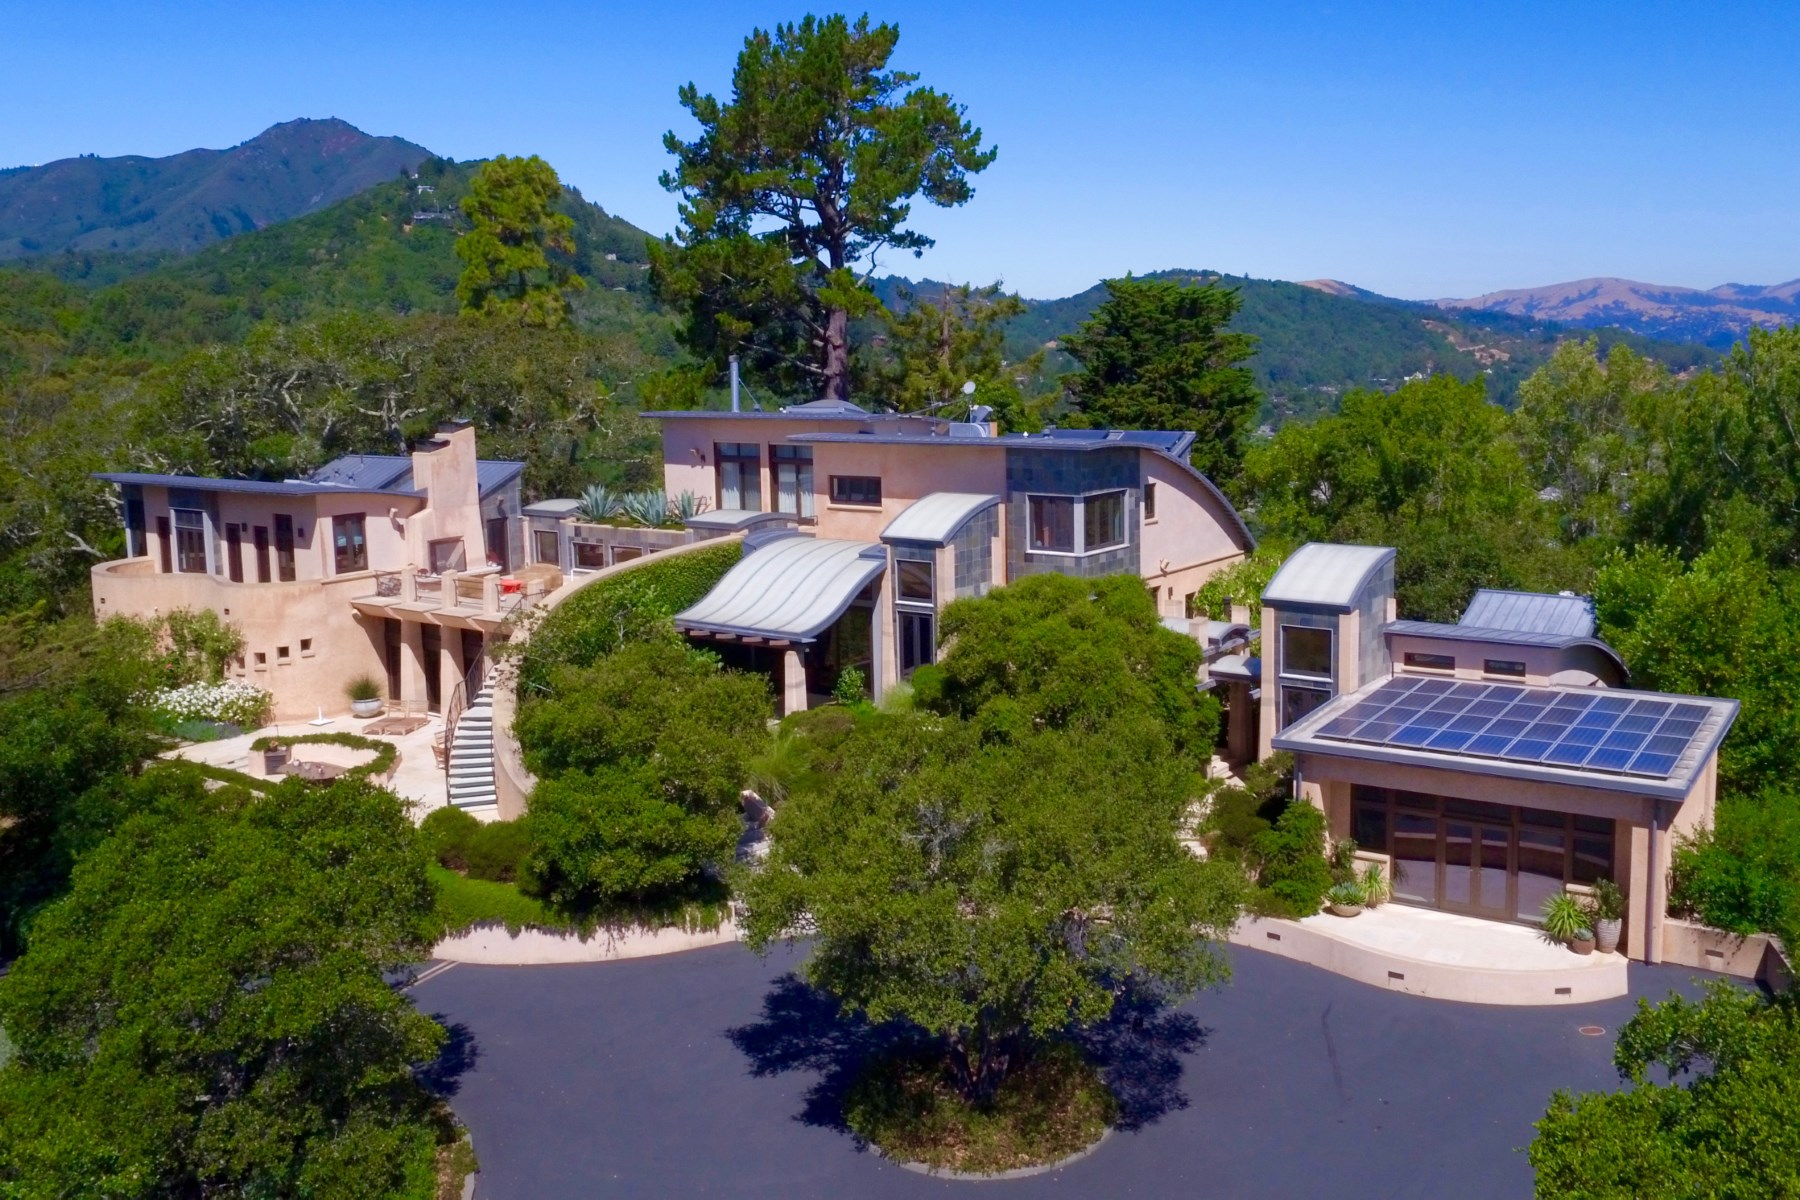 Casa Unifamiliar por un Venta en Unprecedented Approx. 11-Acre Compound Corte Madera, California, 94925 Estados Unidos